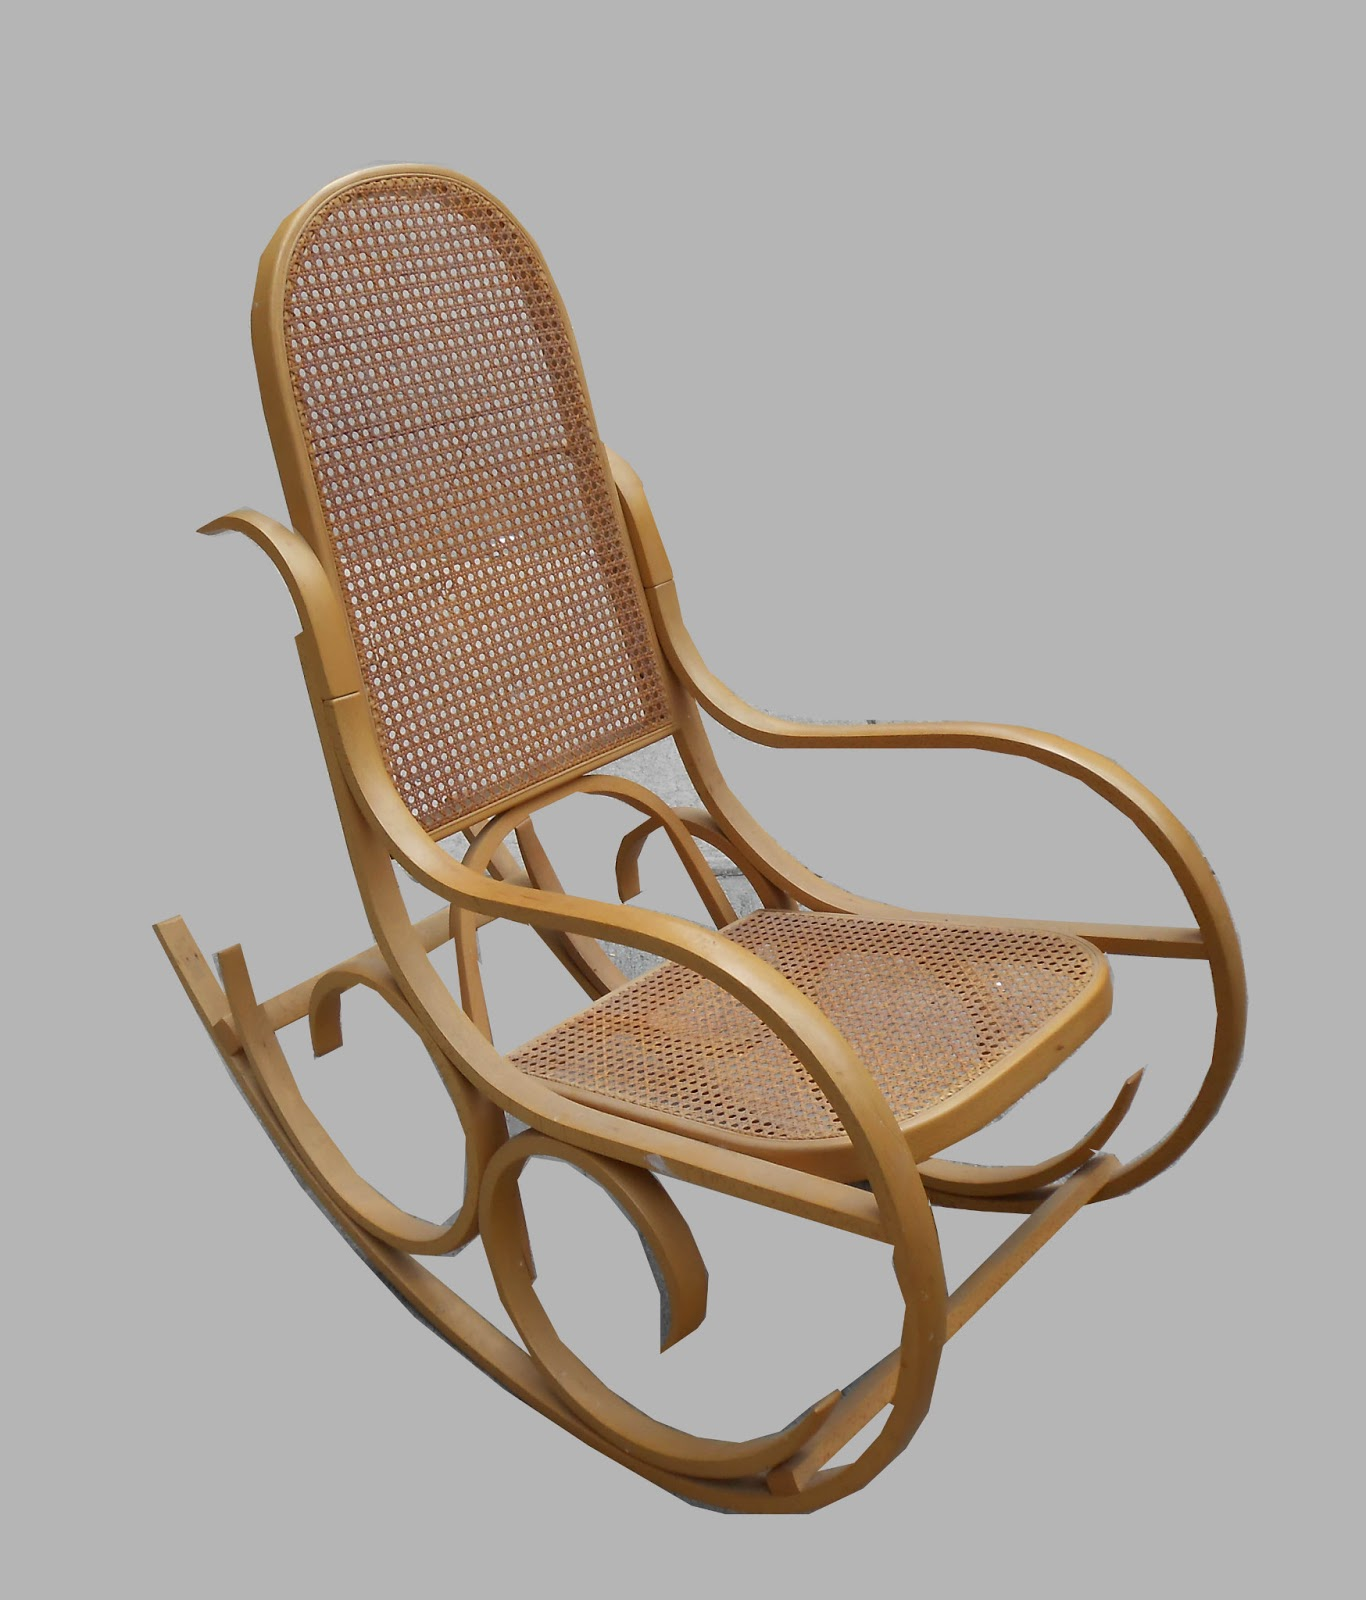 Rocking Chair Soldes Uhuru Furniture And Collectibles Thonet Style Bentwood